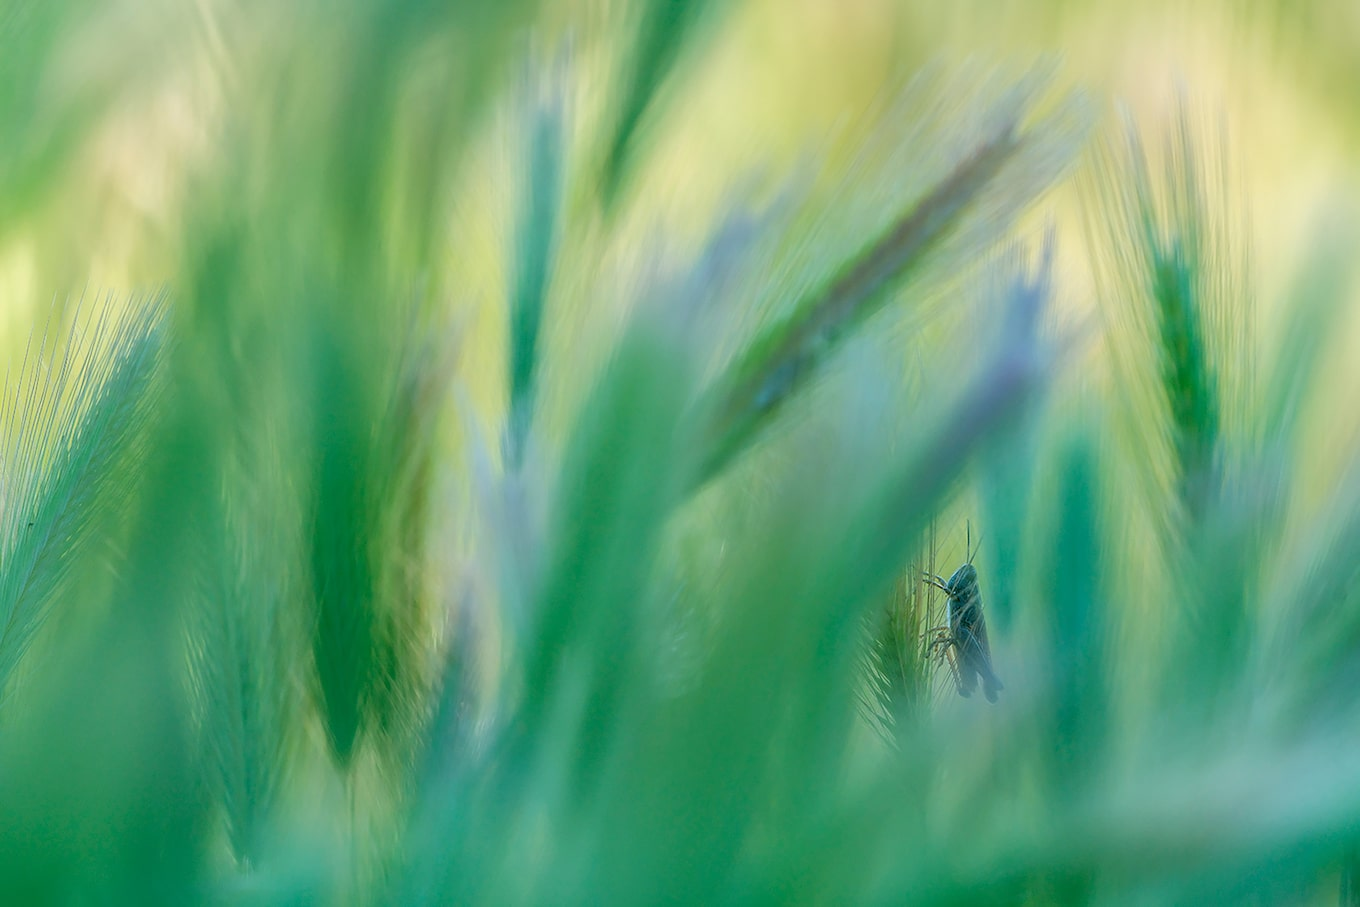 javier-aznar-sony-alpha-7RIII-cricket-waits-patiently-on-plant-stem-surrounded-by-foliage